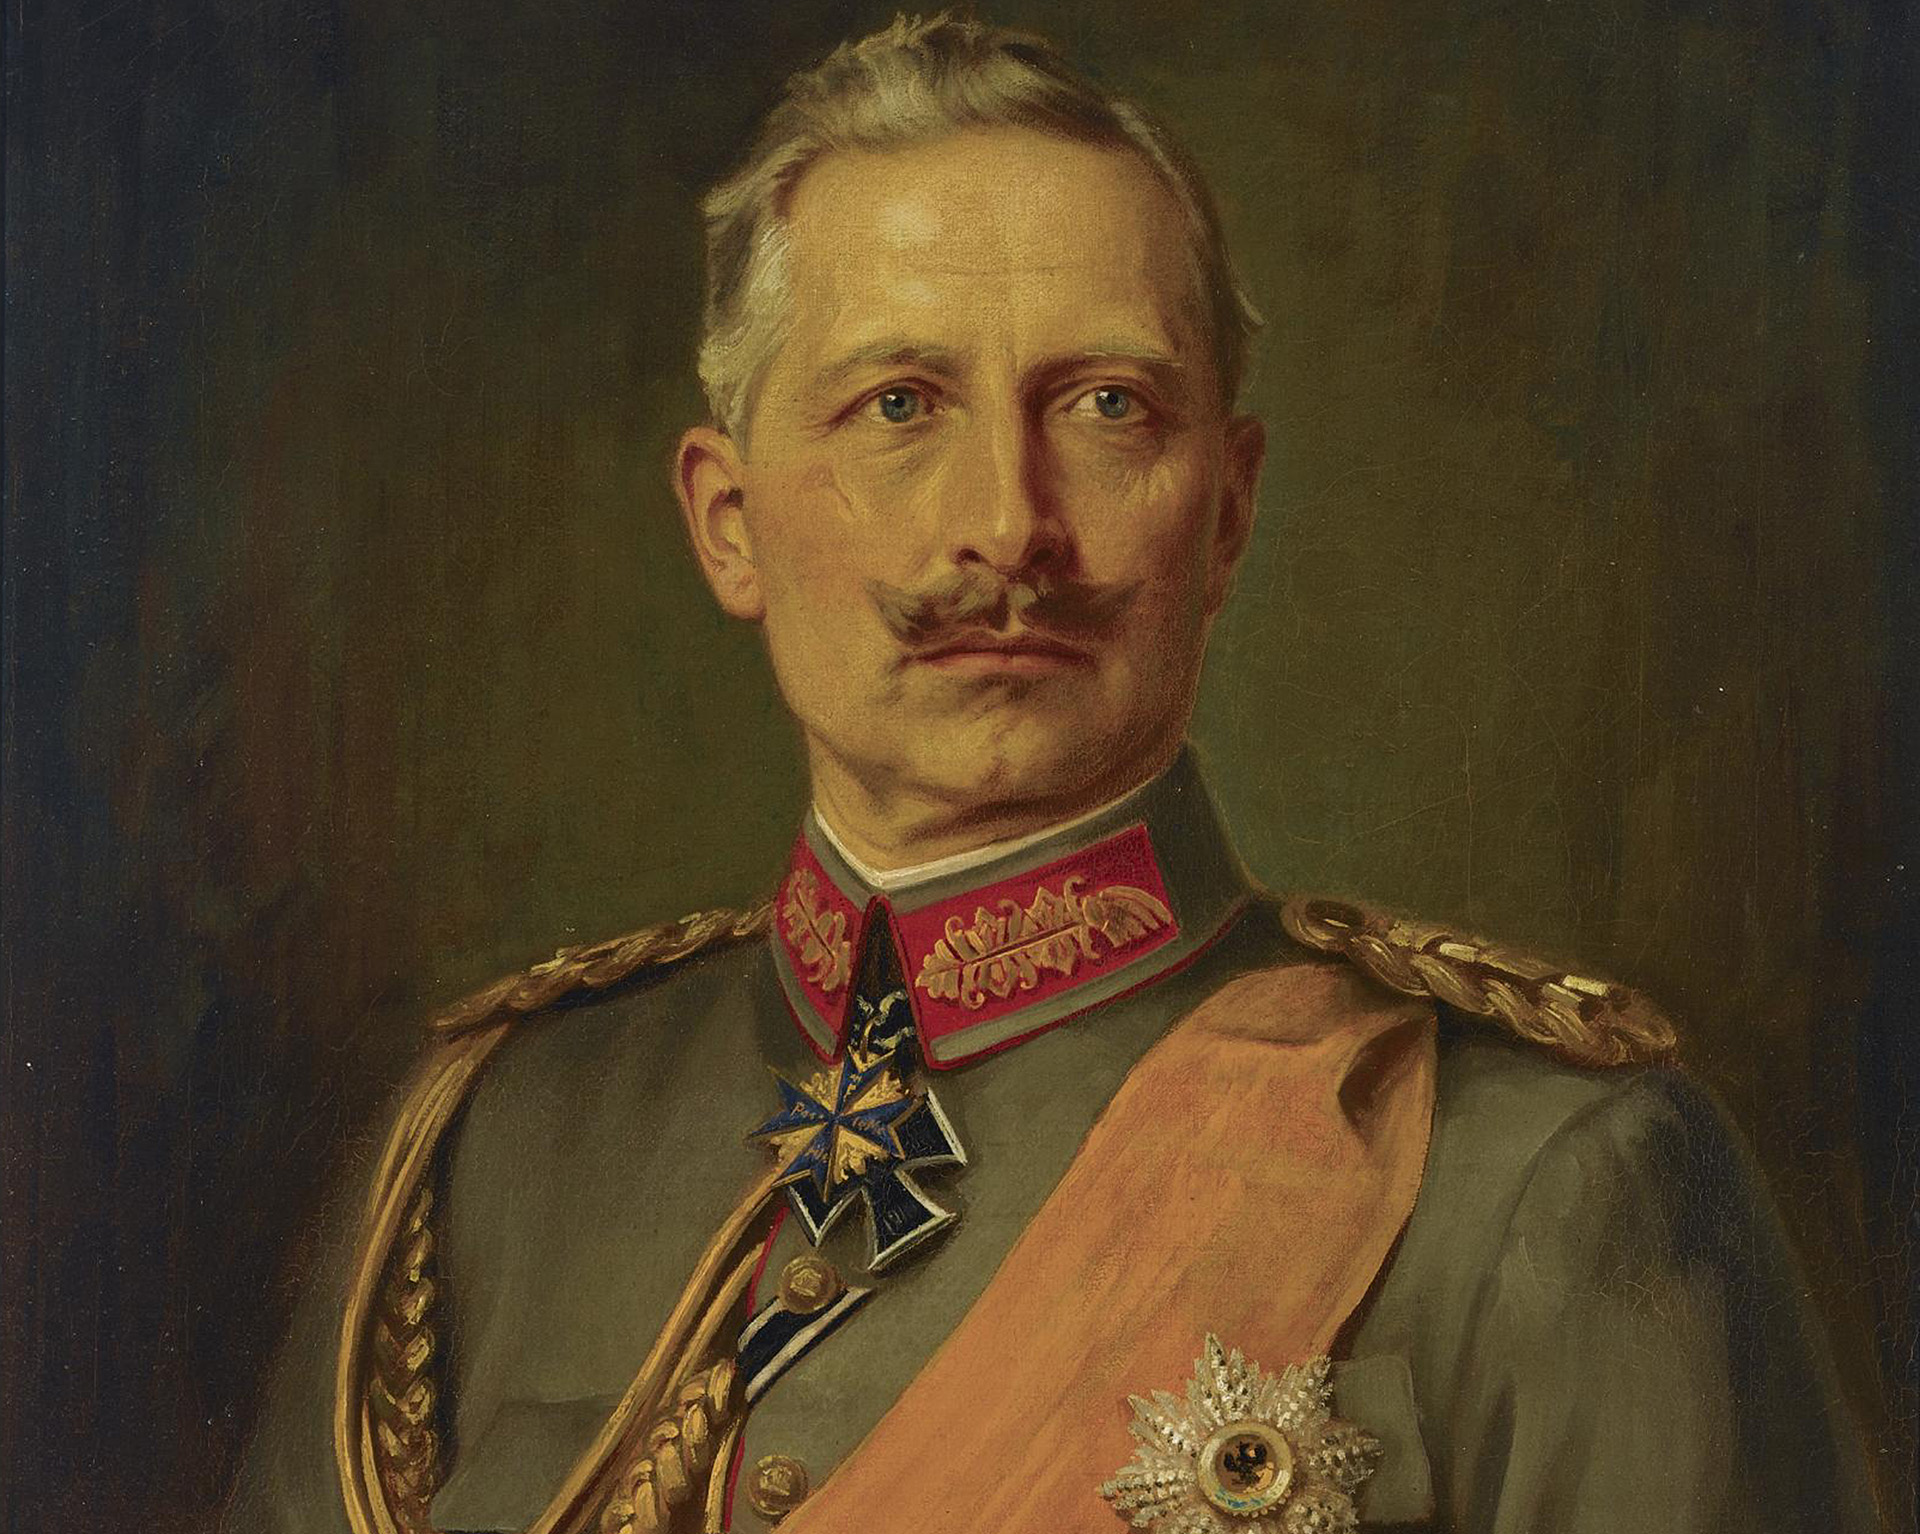 German Emperor Wilhelm II (1859-1941), King of Prussia, 1911. (Credit: Fine Art Images/Heritage Images/Getty Images)